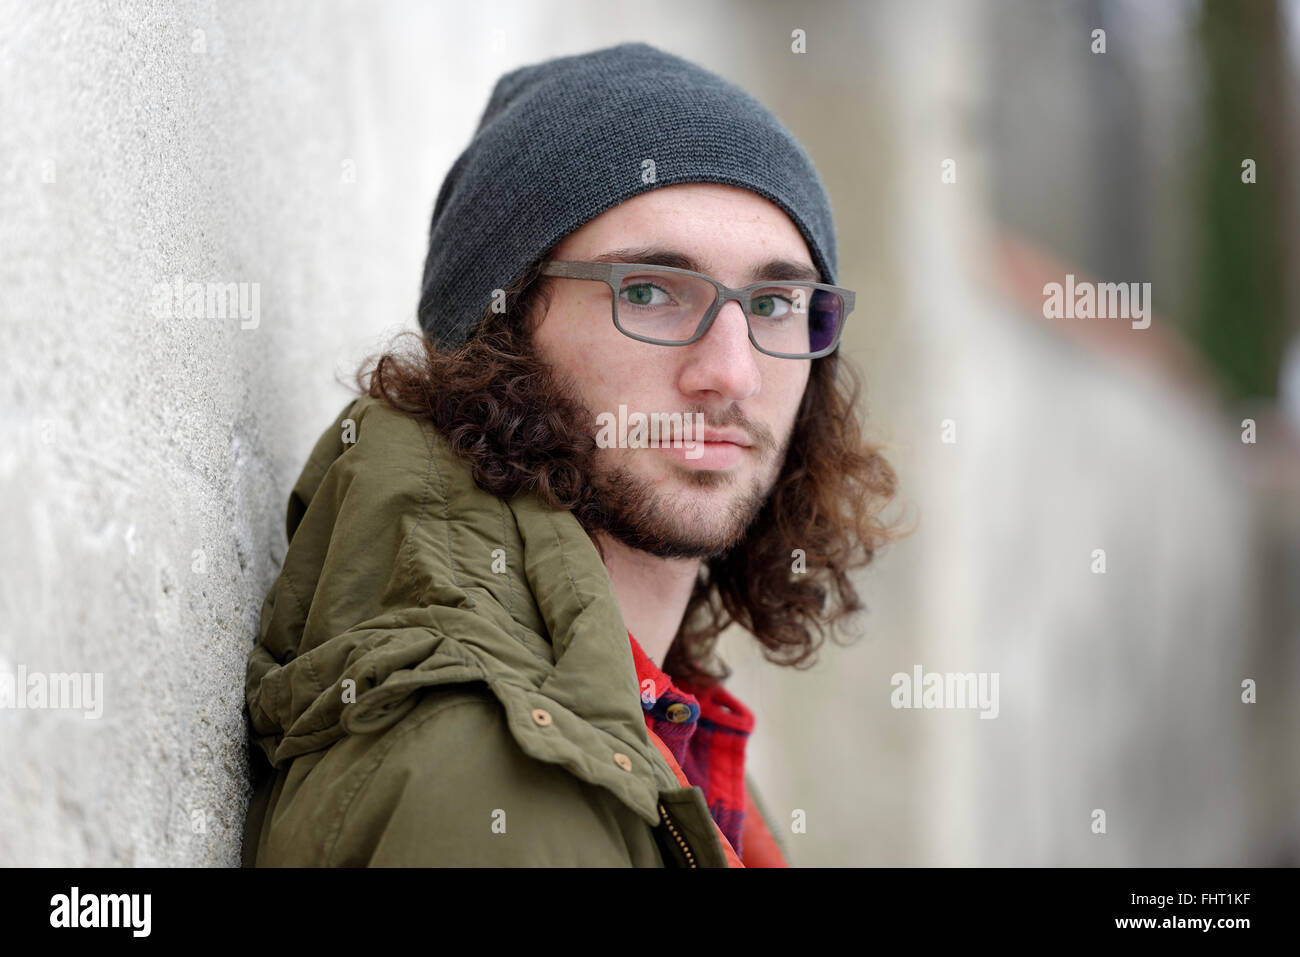 Portrait of relaxed young ma nwith curly brown hair wearing wooly hat - Stock Image